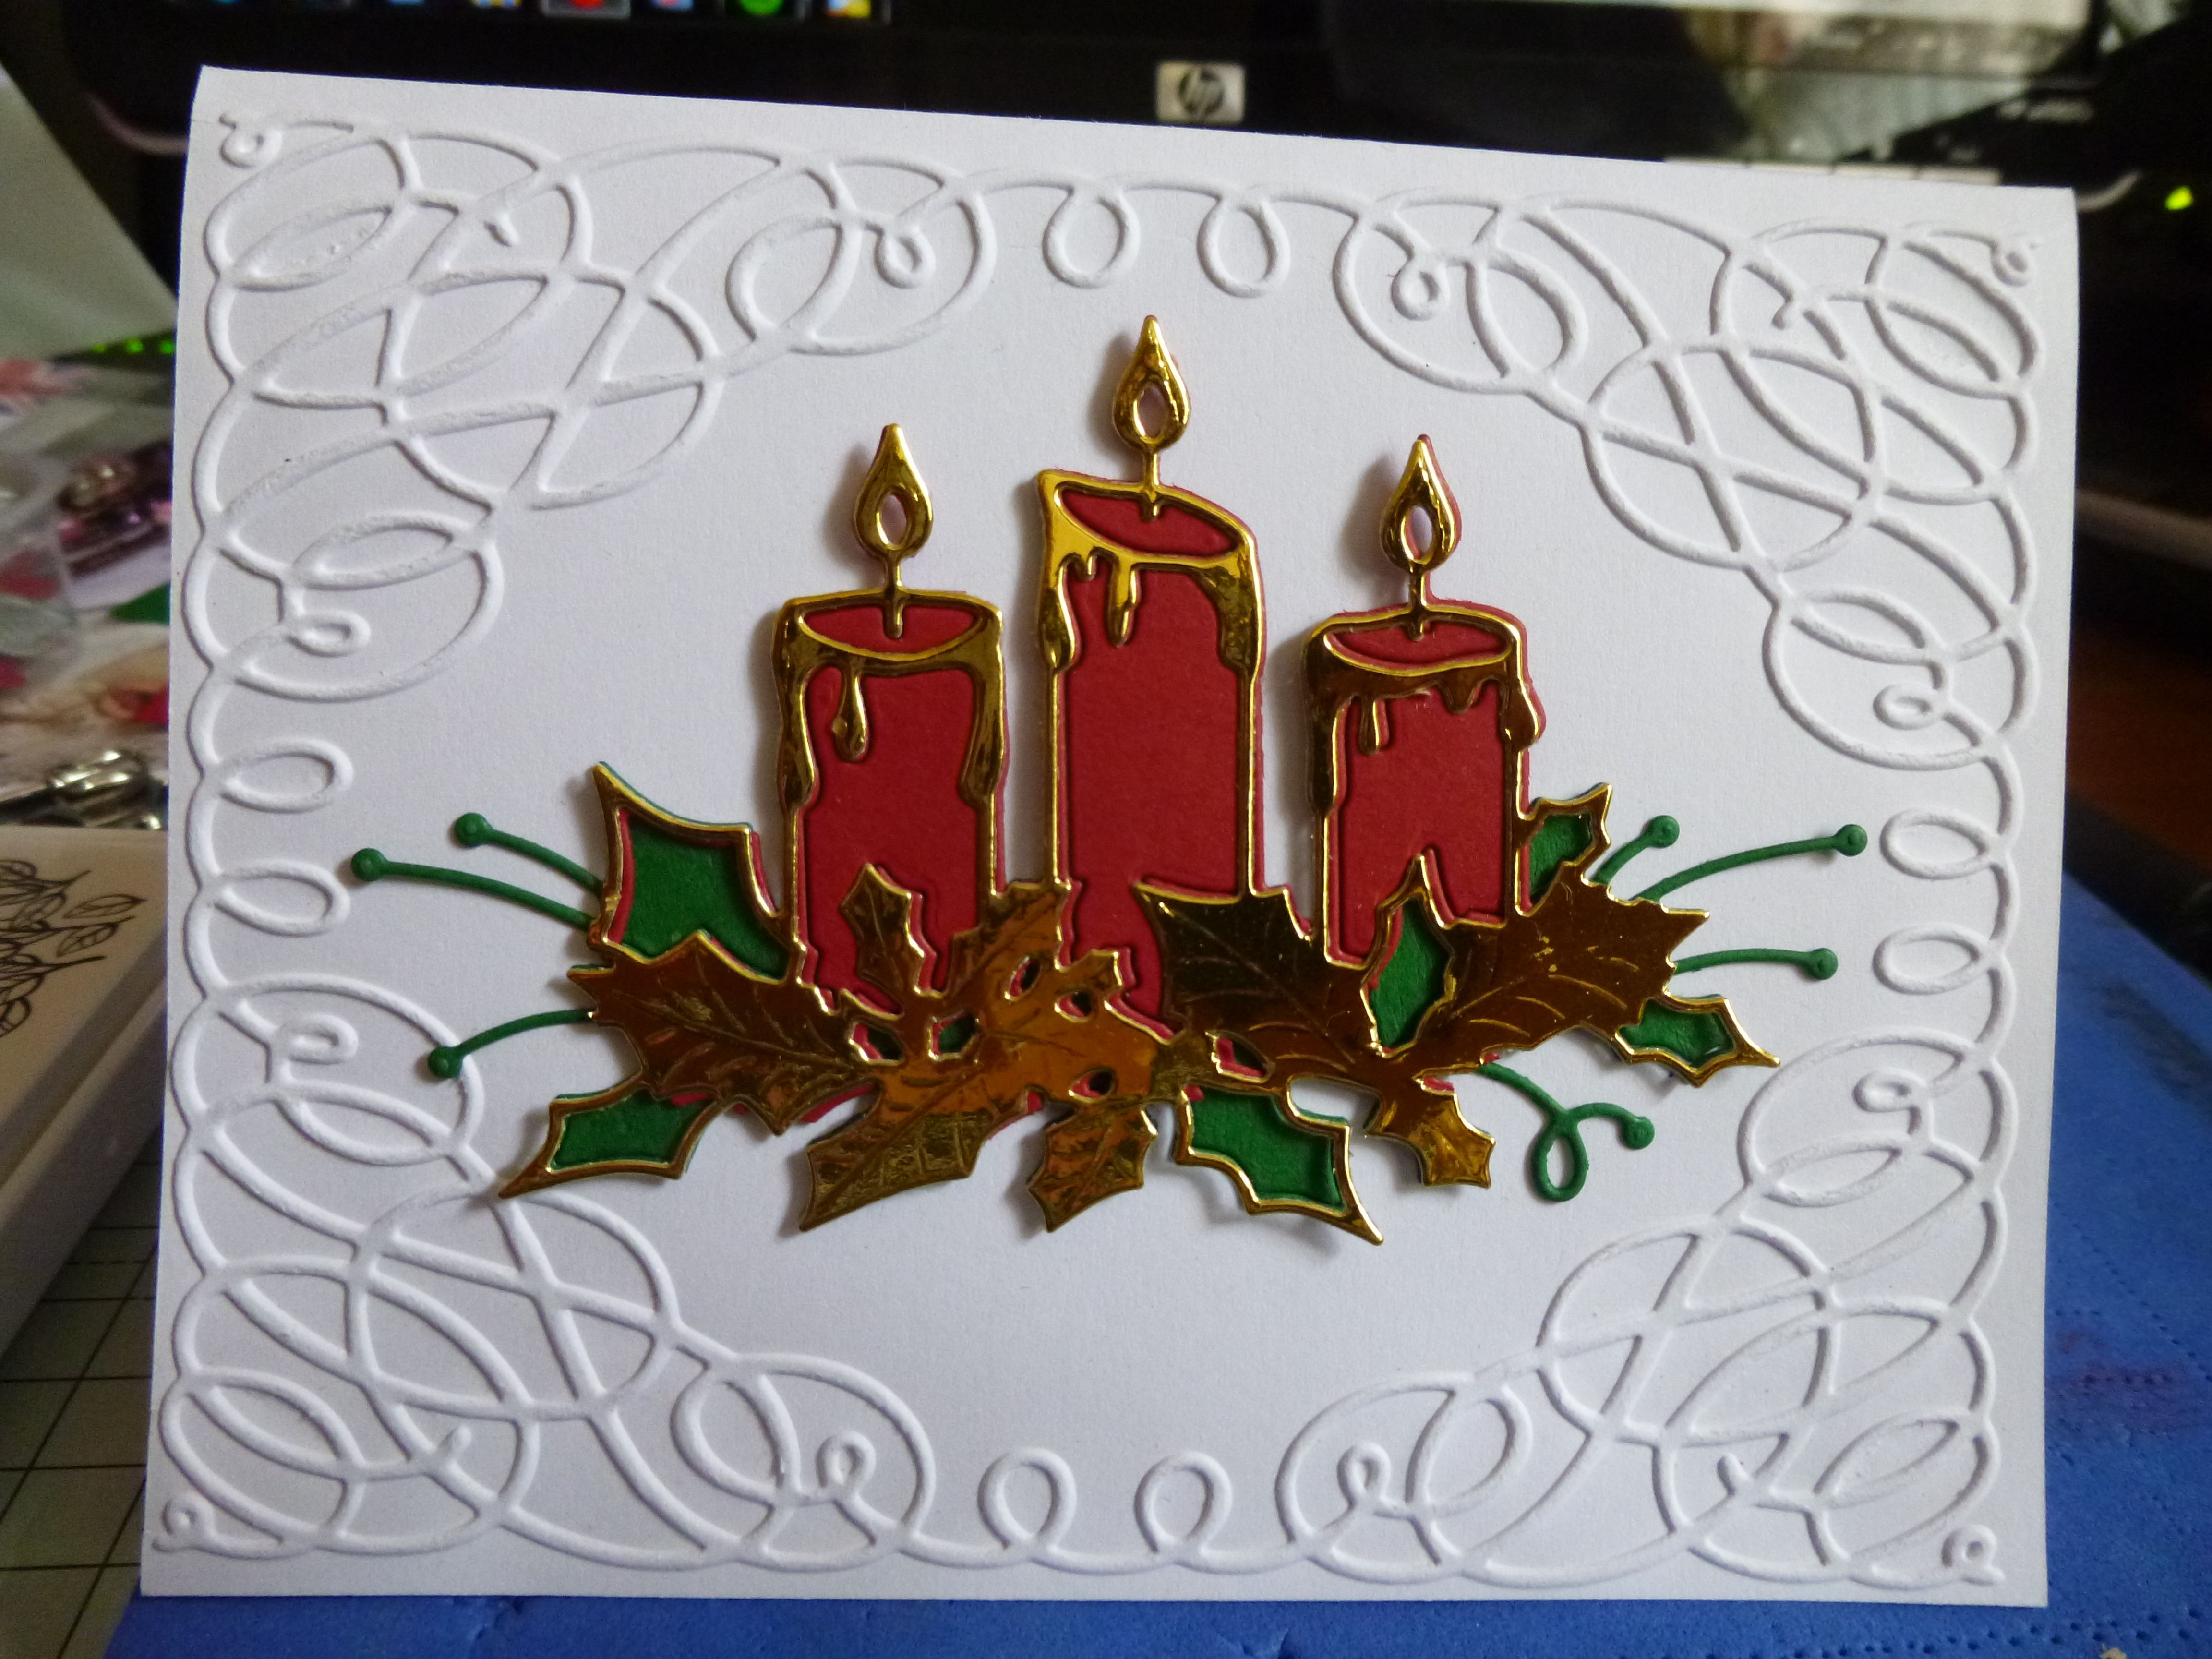 Gift in One Blank Insert Page Merry Christmas Leadlight Gift Card Stained Glass 13d Candle Mobile Attached to Card